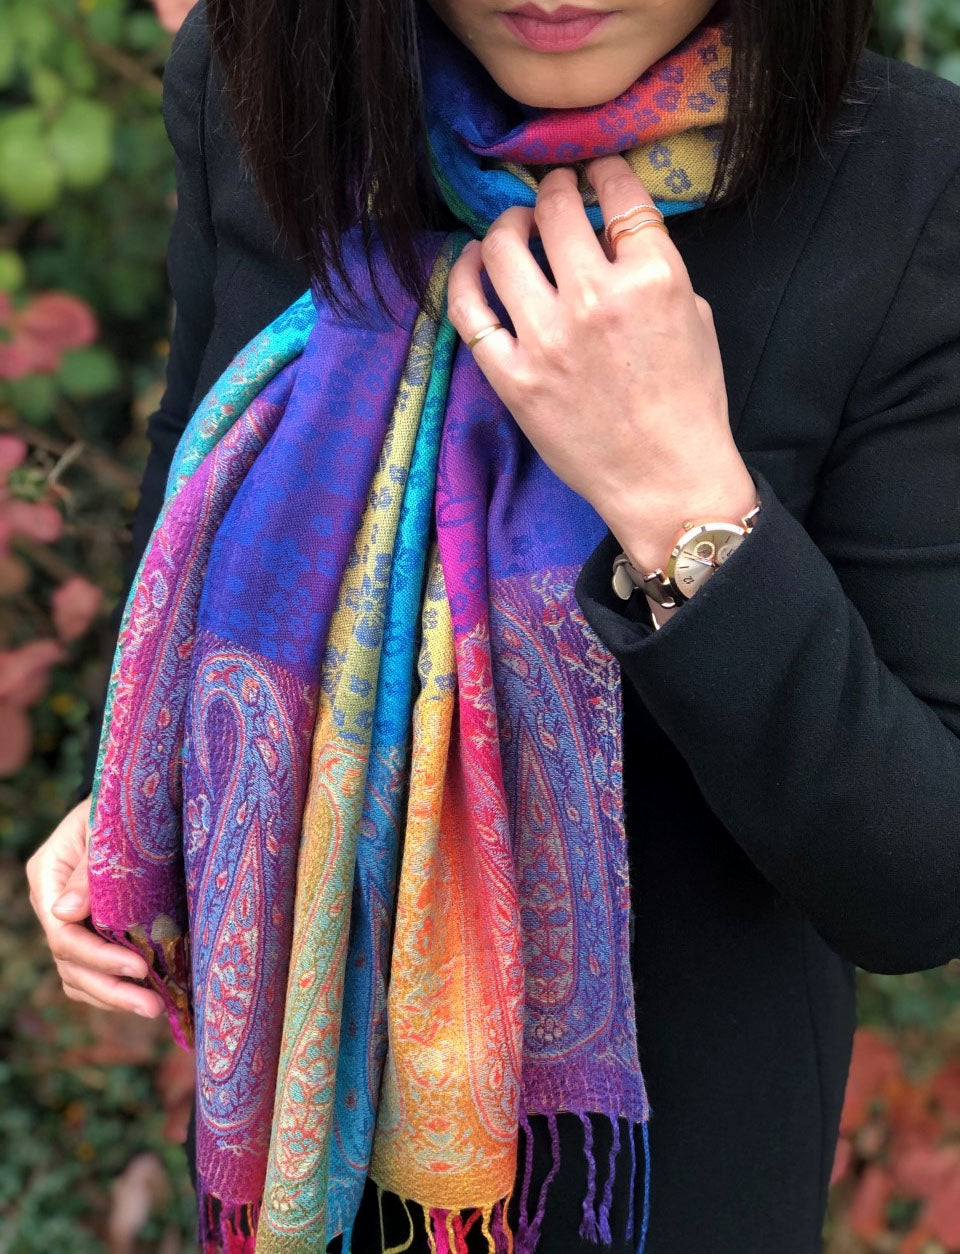 A-SHU LARGE BLUE RAINBOW FLORAL PAISLEY PASHMINA SHAWL SCARF - A-SHU.CO.UK